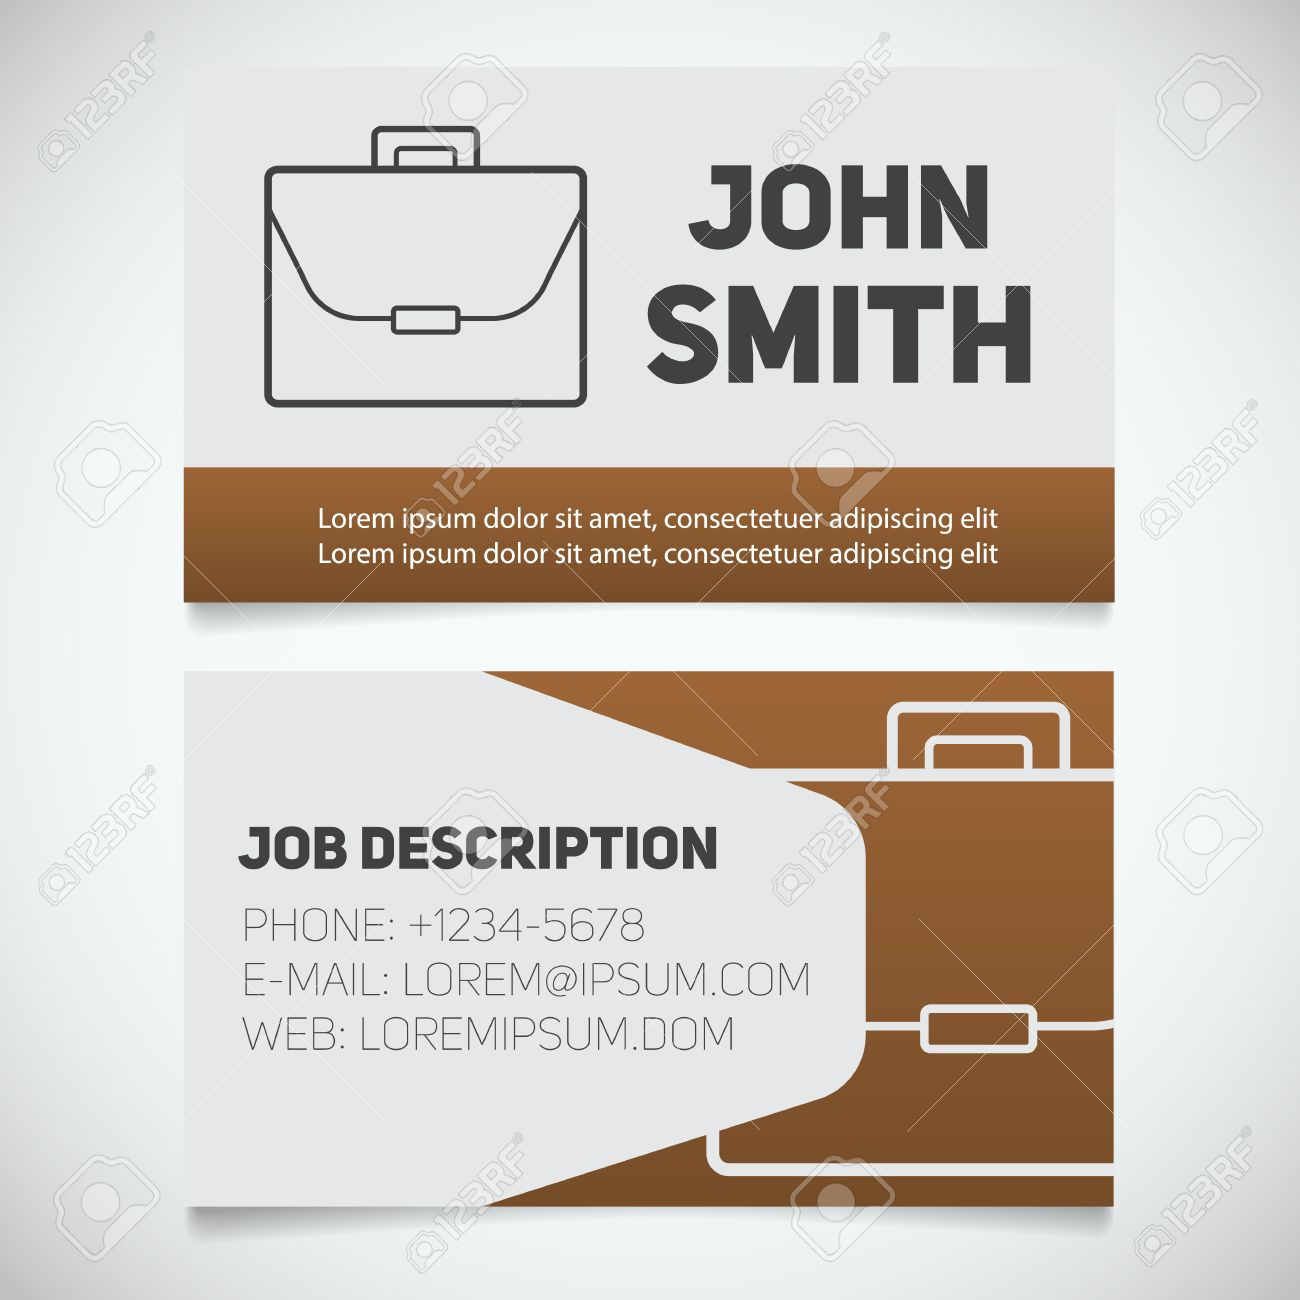 Mail merge business cards gallery free business cards business card briefcase image collections free business cards business card print template with briefcase logo easy magicingreecefo Image collections